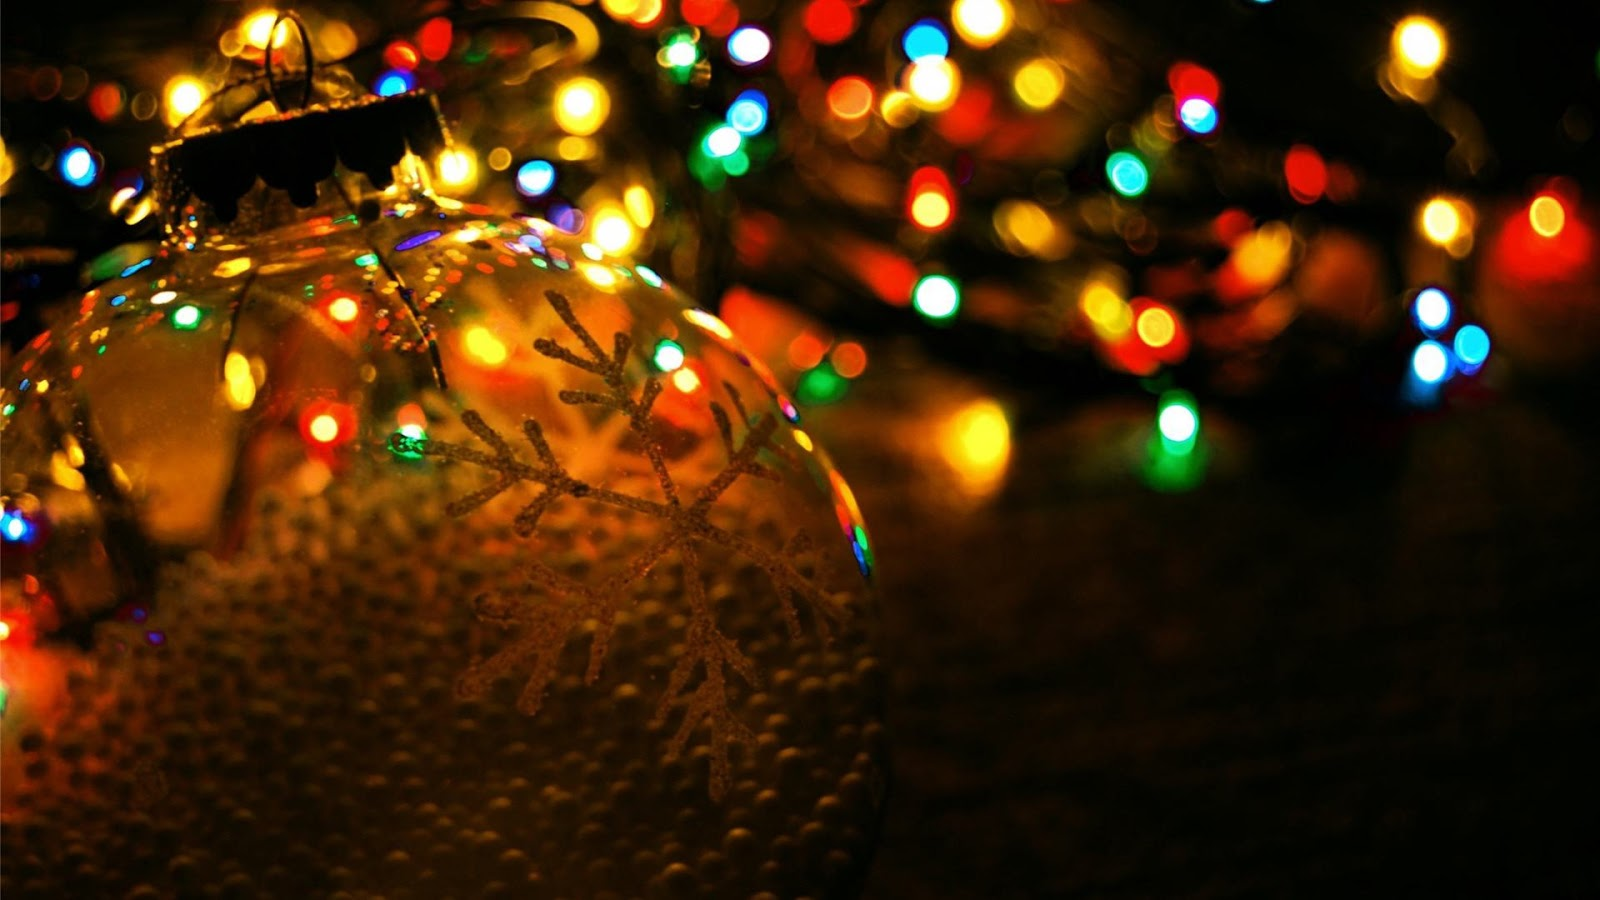 Pretty Christmas Lights Wallpaper 24368 2560x1600 px